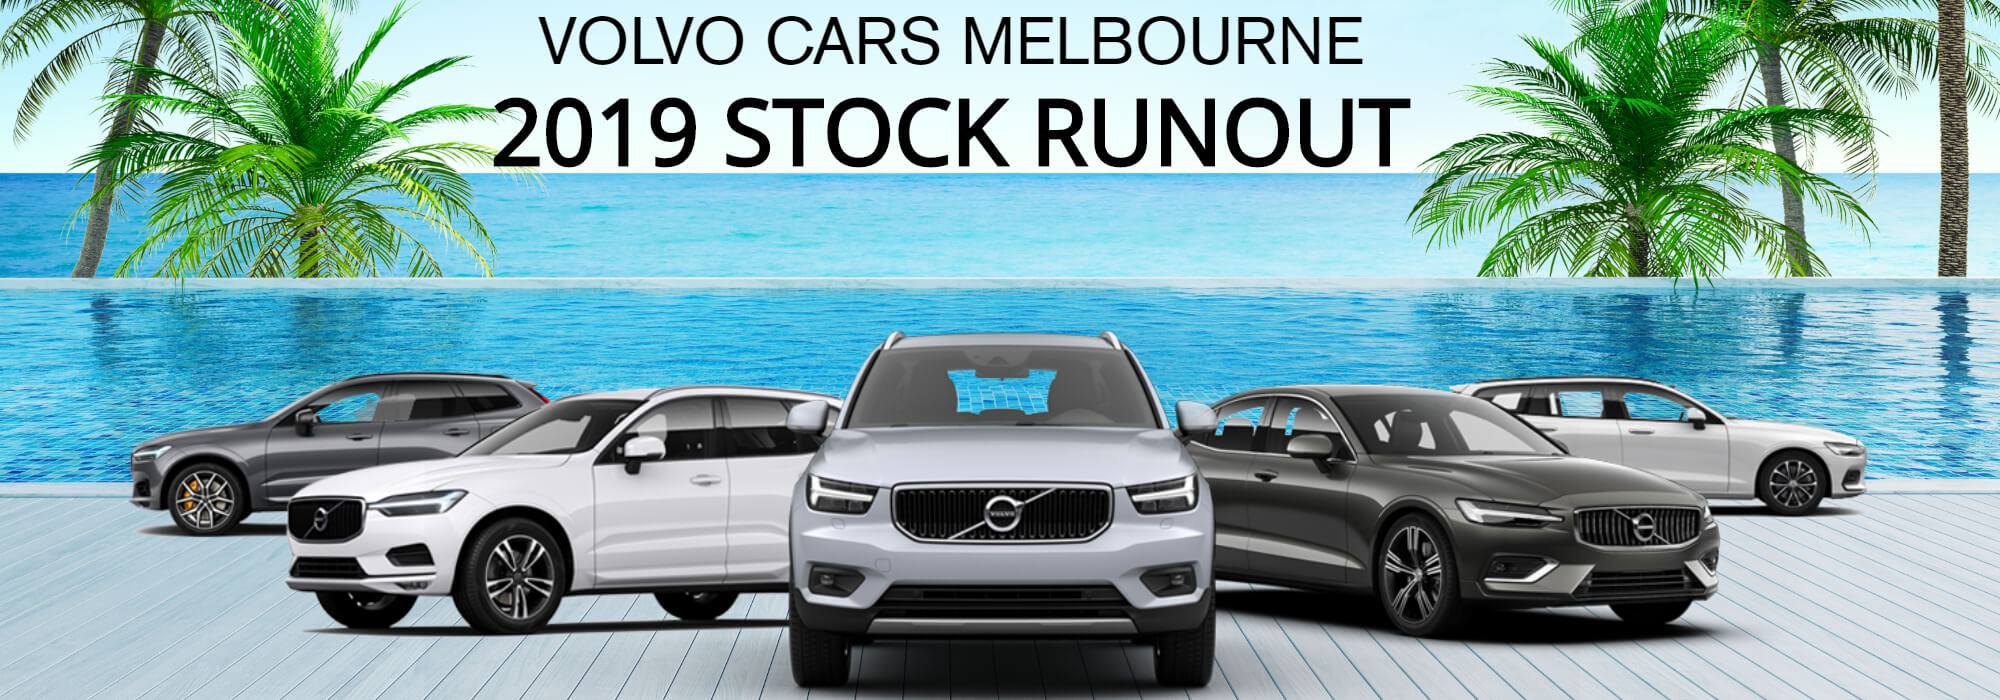 VOLVO CARS MELBOURNE  2019 STOCK RUNOUT